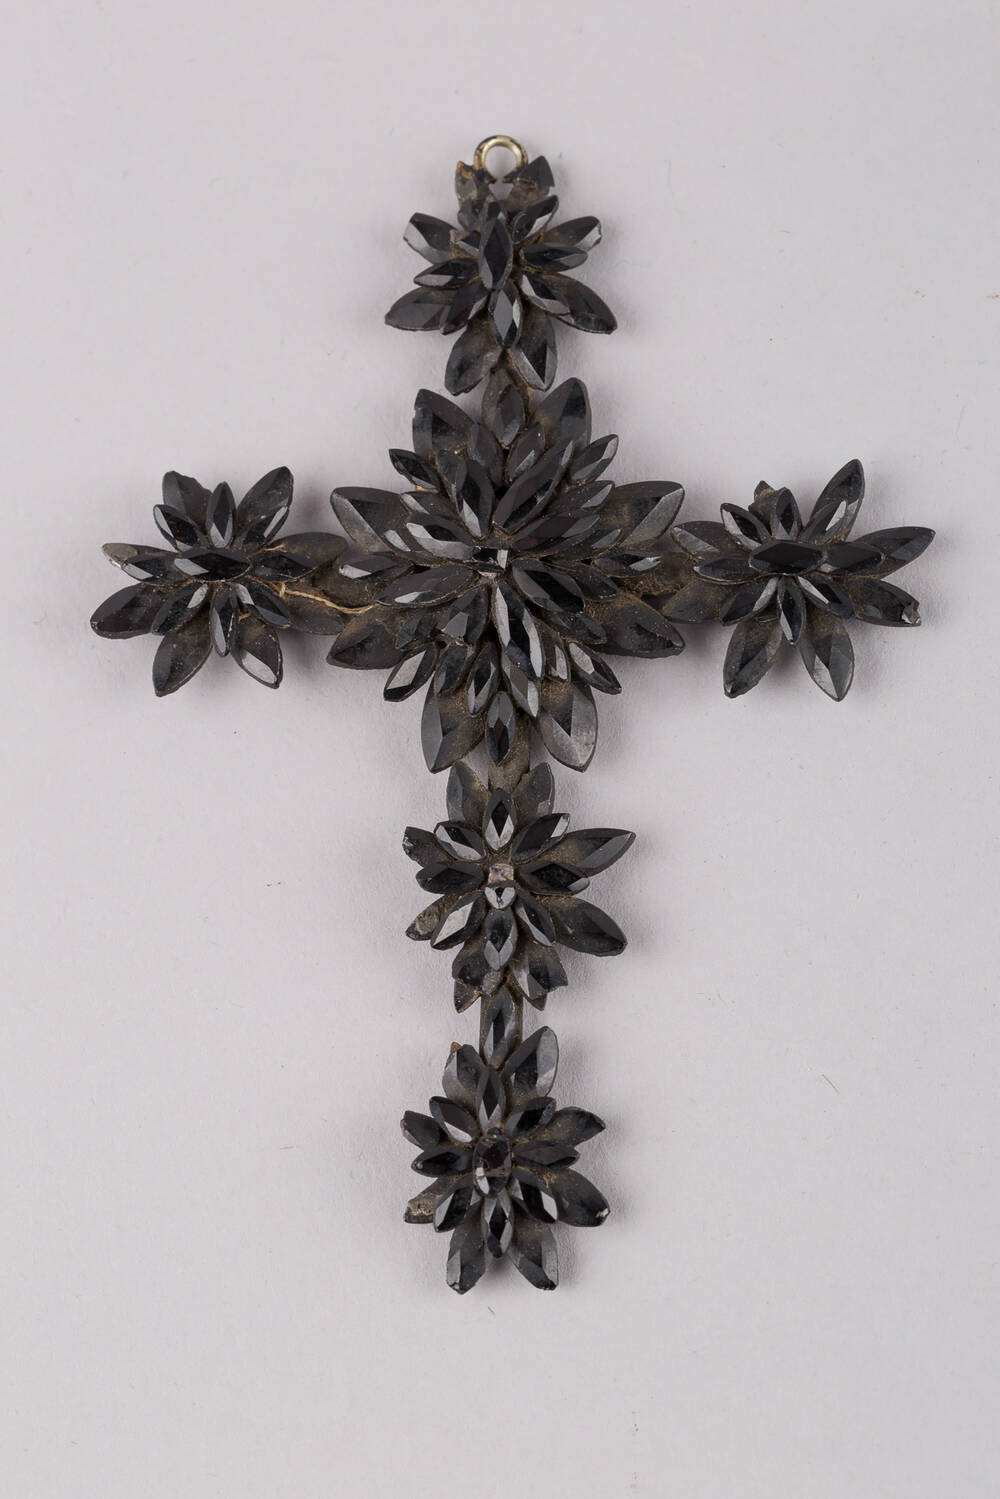 Cross pendant made of jet beads (Weaver's Cottage)